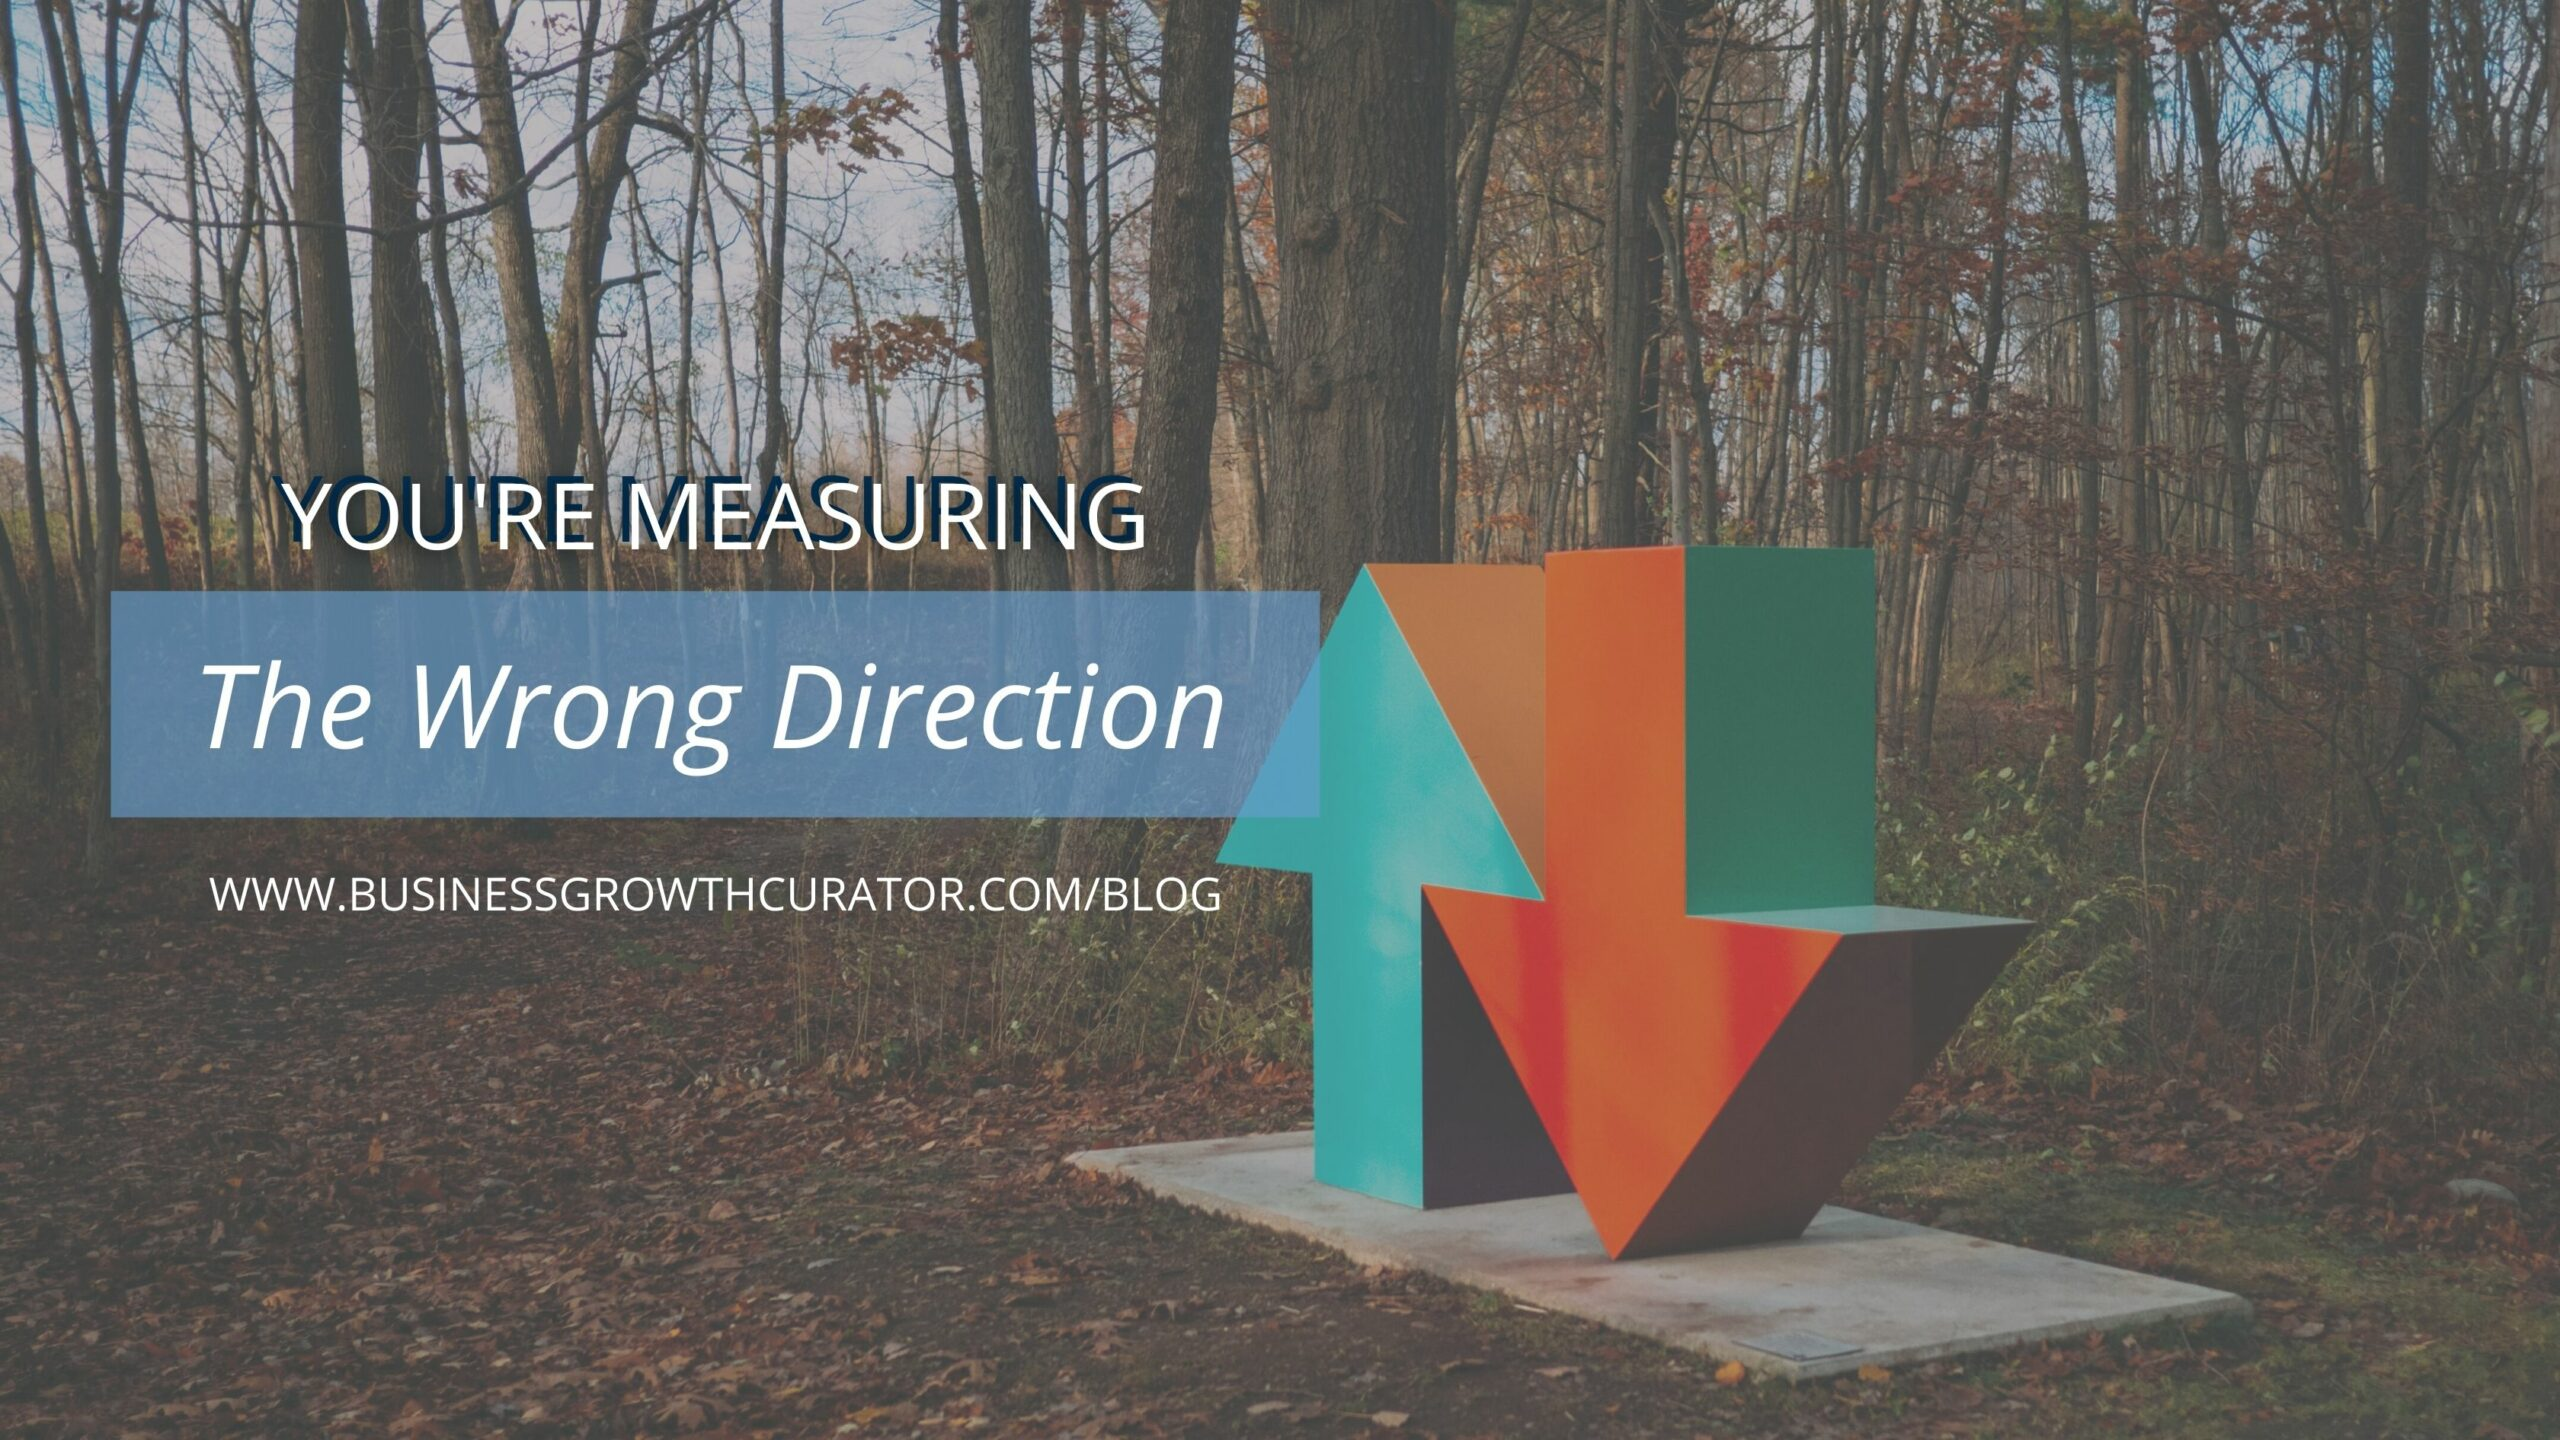 youre-measuring-the-wrong-direction-cover